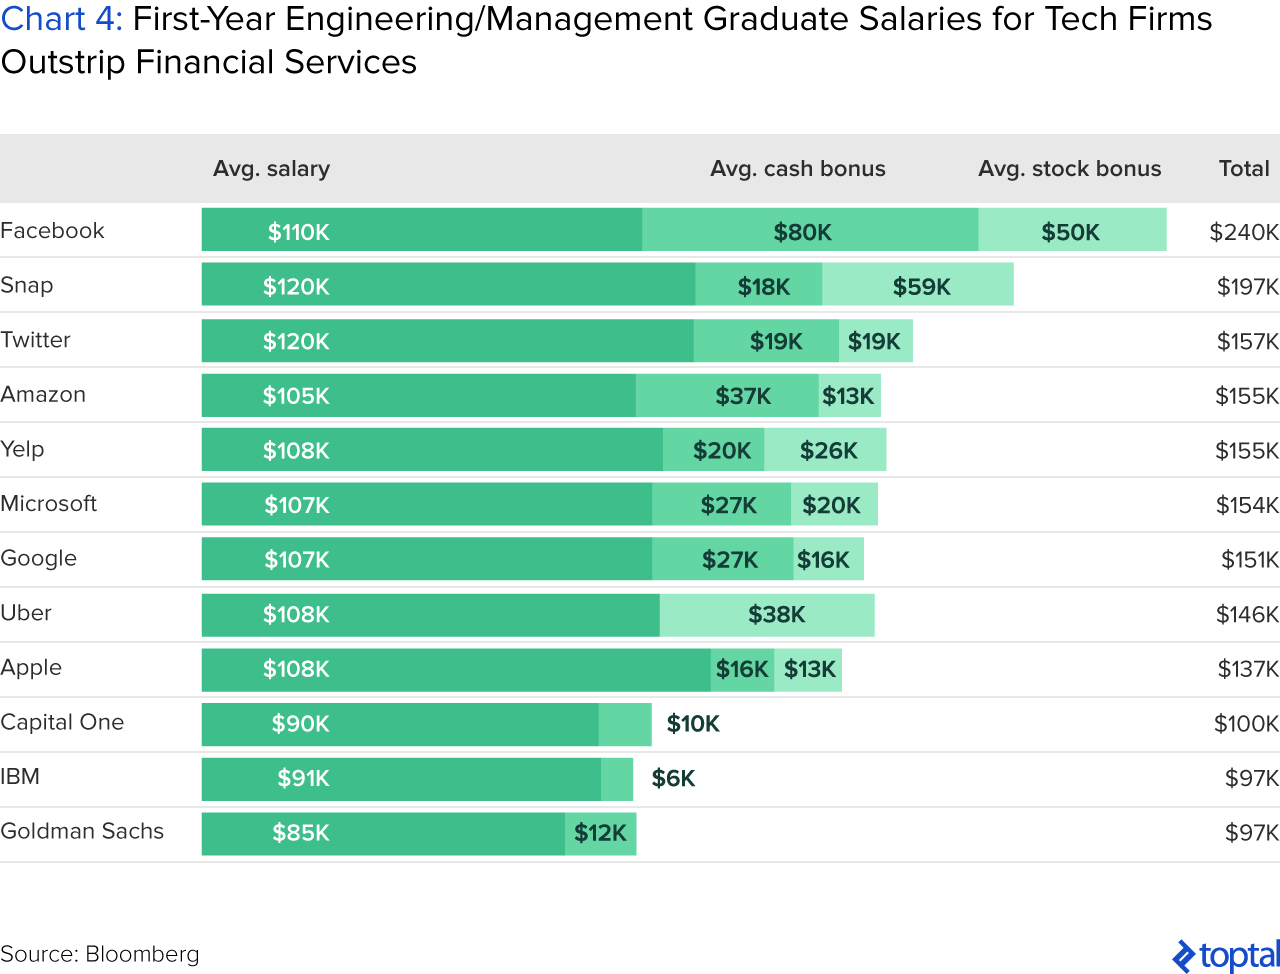 Chart 4: First-year Engineering/Management Graduate Salaries for Tech Firms Outstrip Financial Services